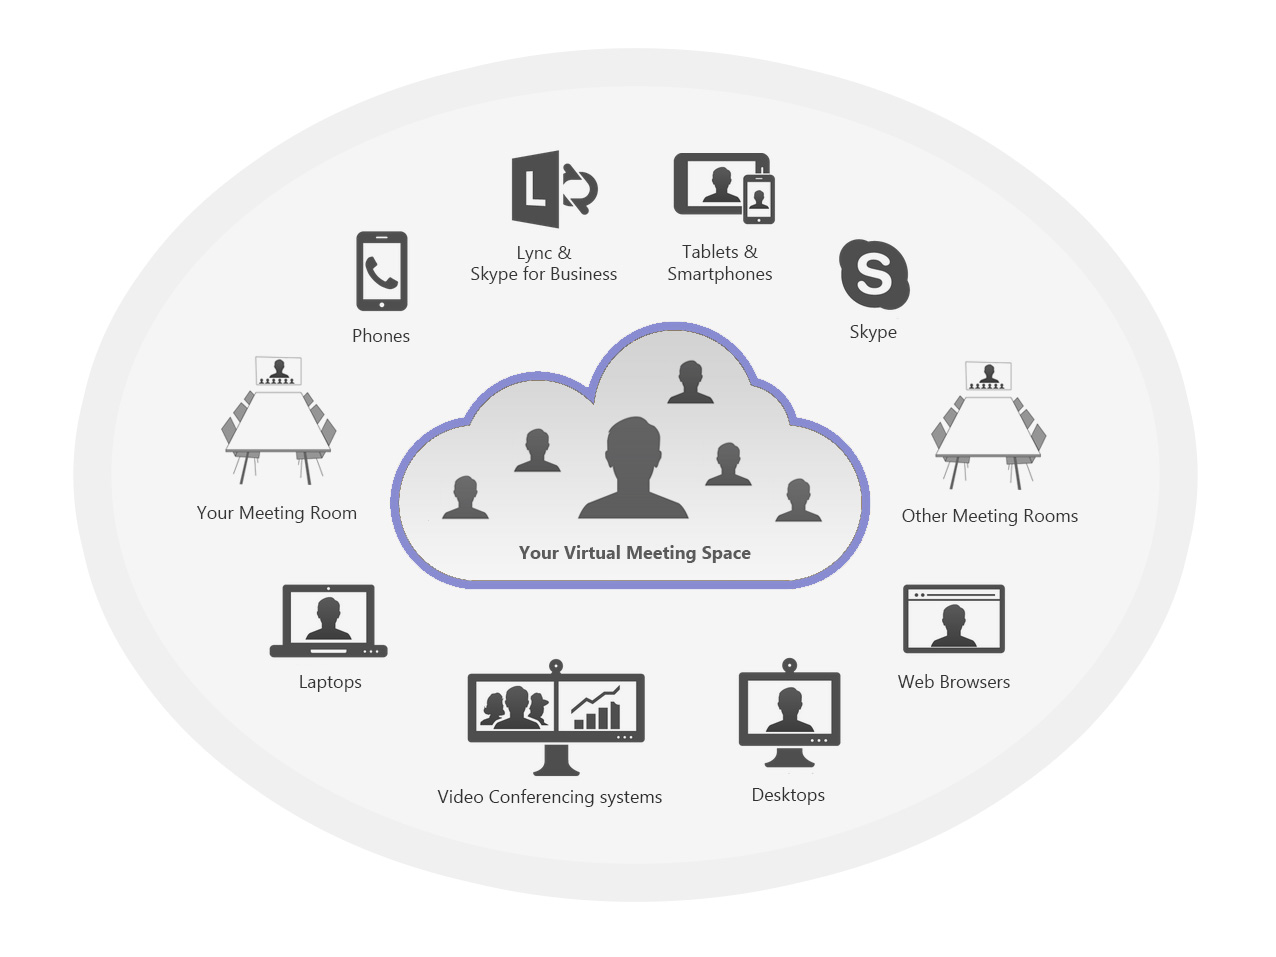 Virtual Meeting Rooms and connectivity diagram